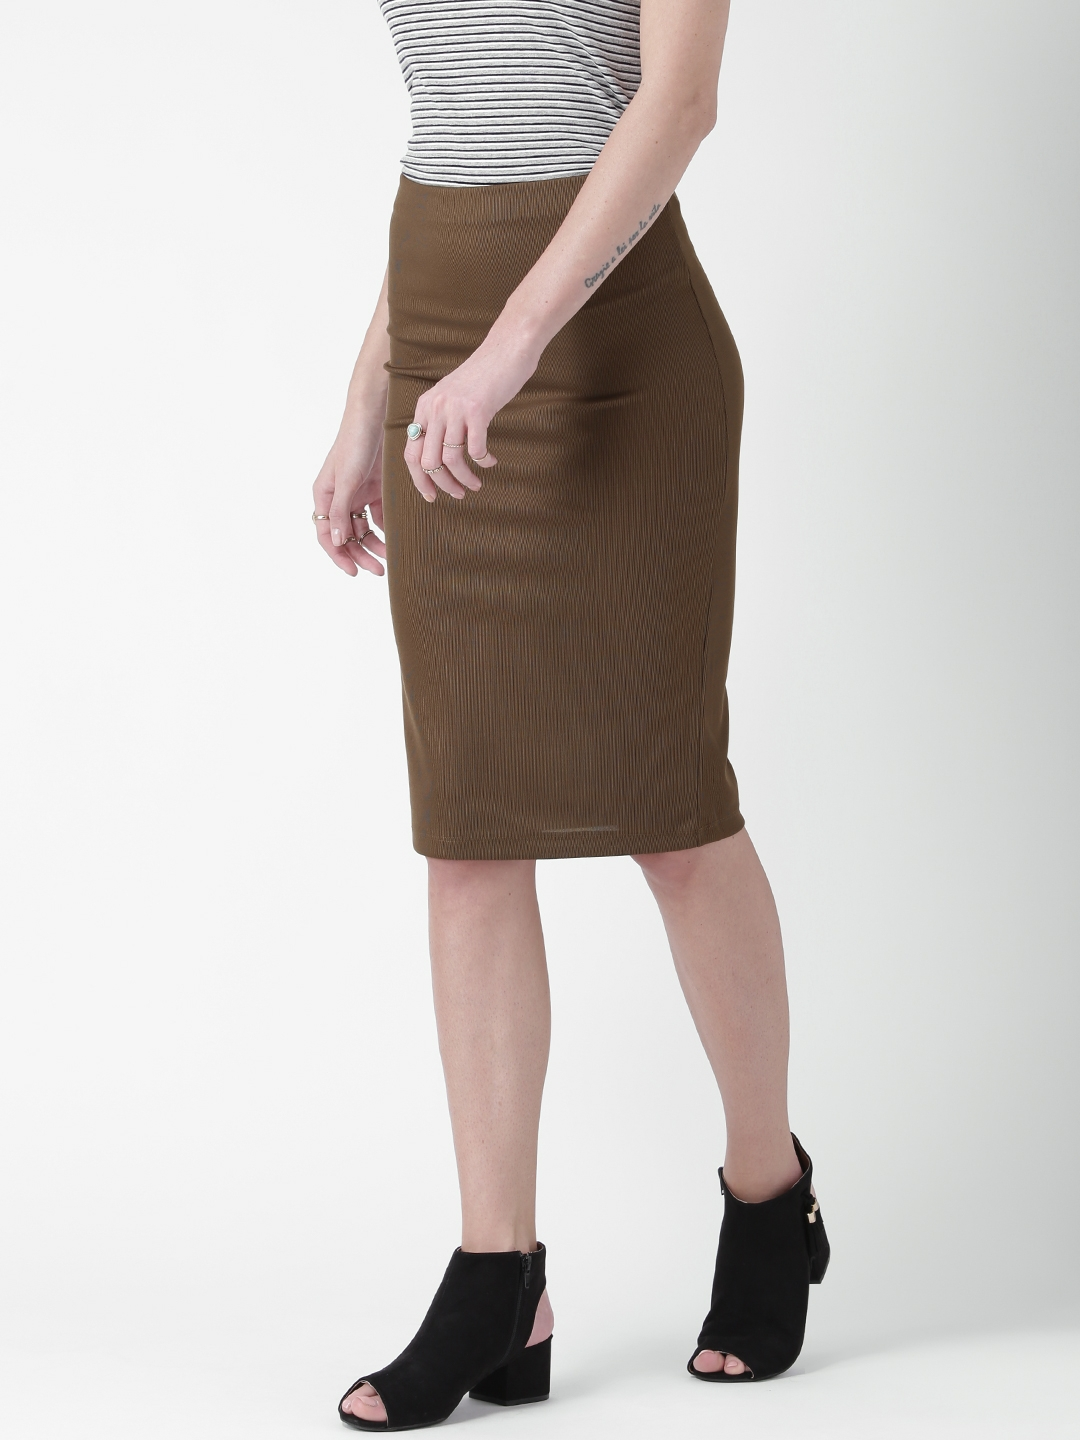 aebc0c40a9 Buy FOREVER 21 Olive Brown Pencil Skirt - Skirts for Women 1762498 ...